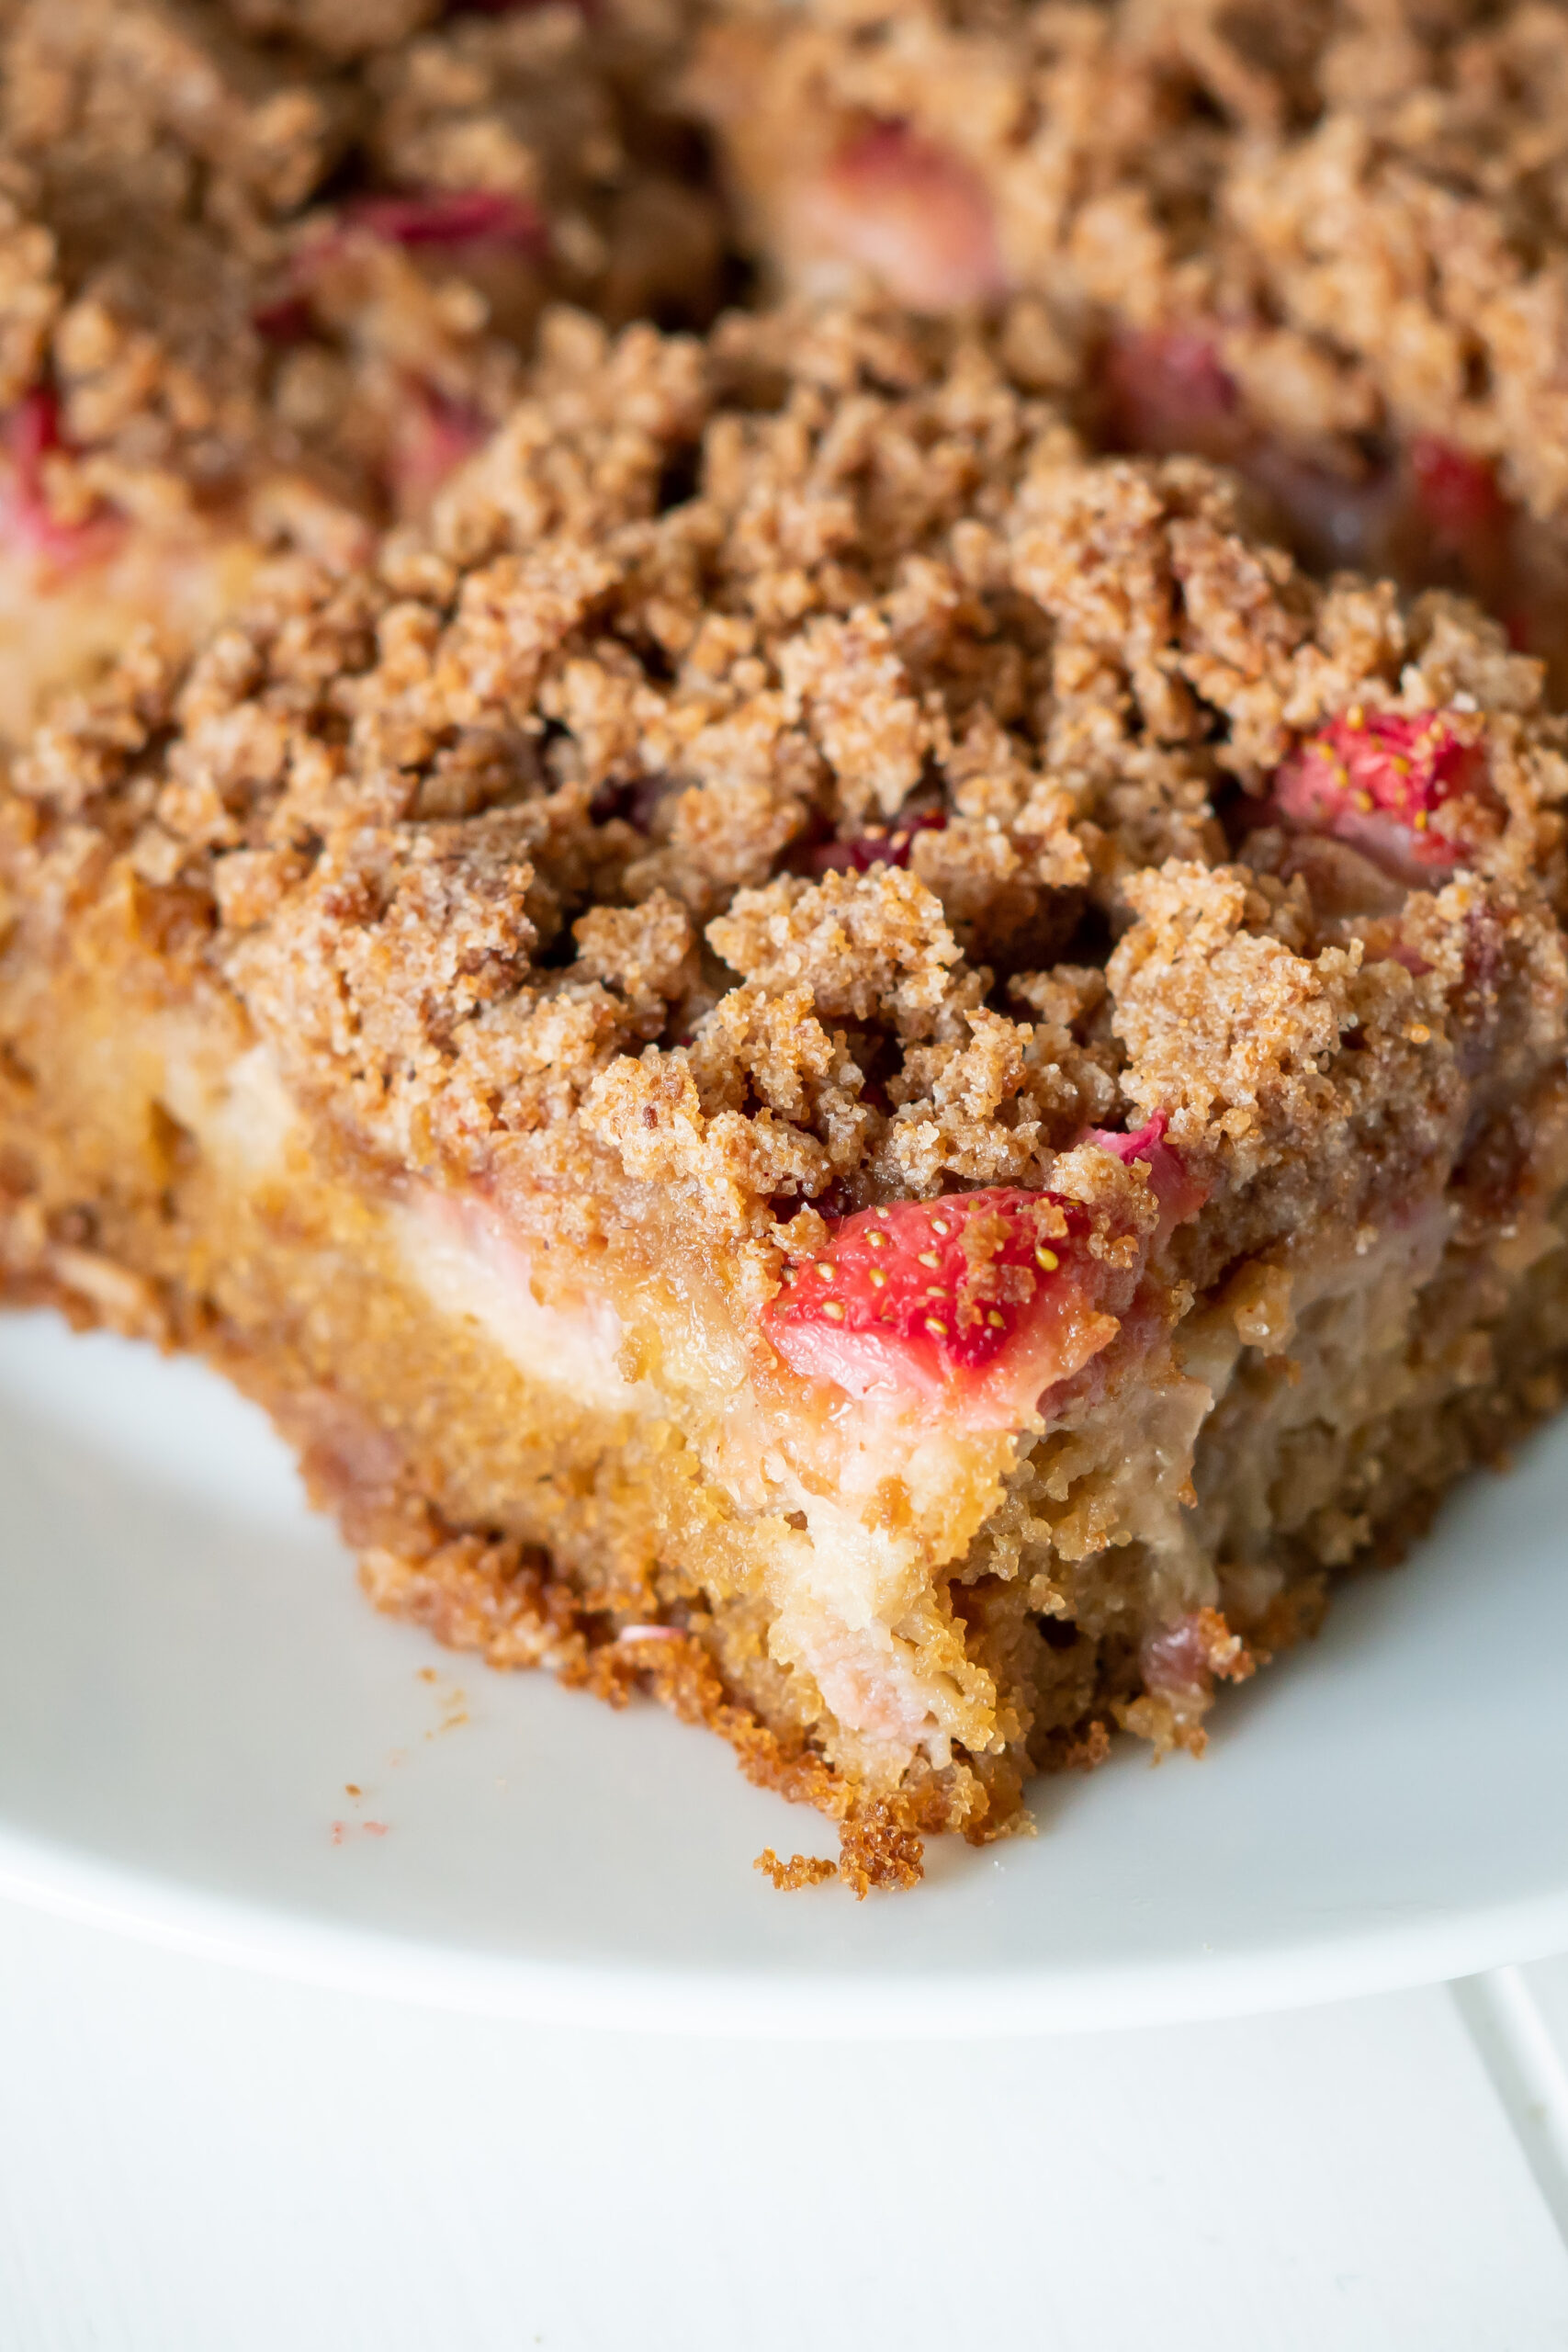 A zoomed in view of the corner of a piece of gluten free rhubarb cake to show the layers and crisp topping.